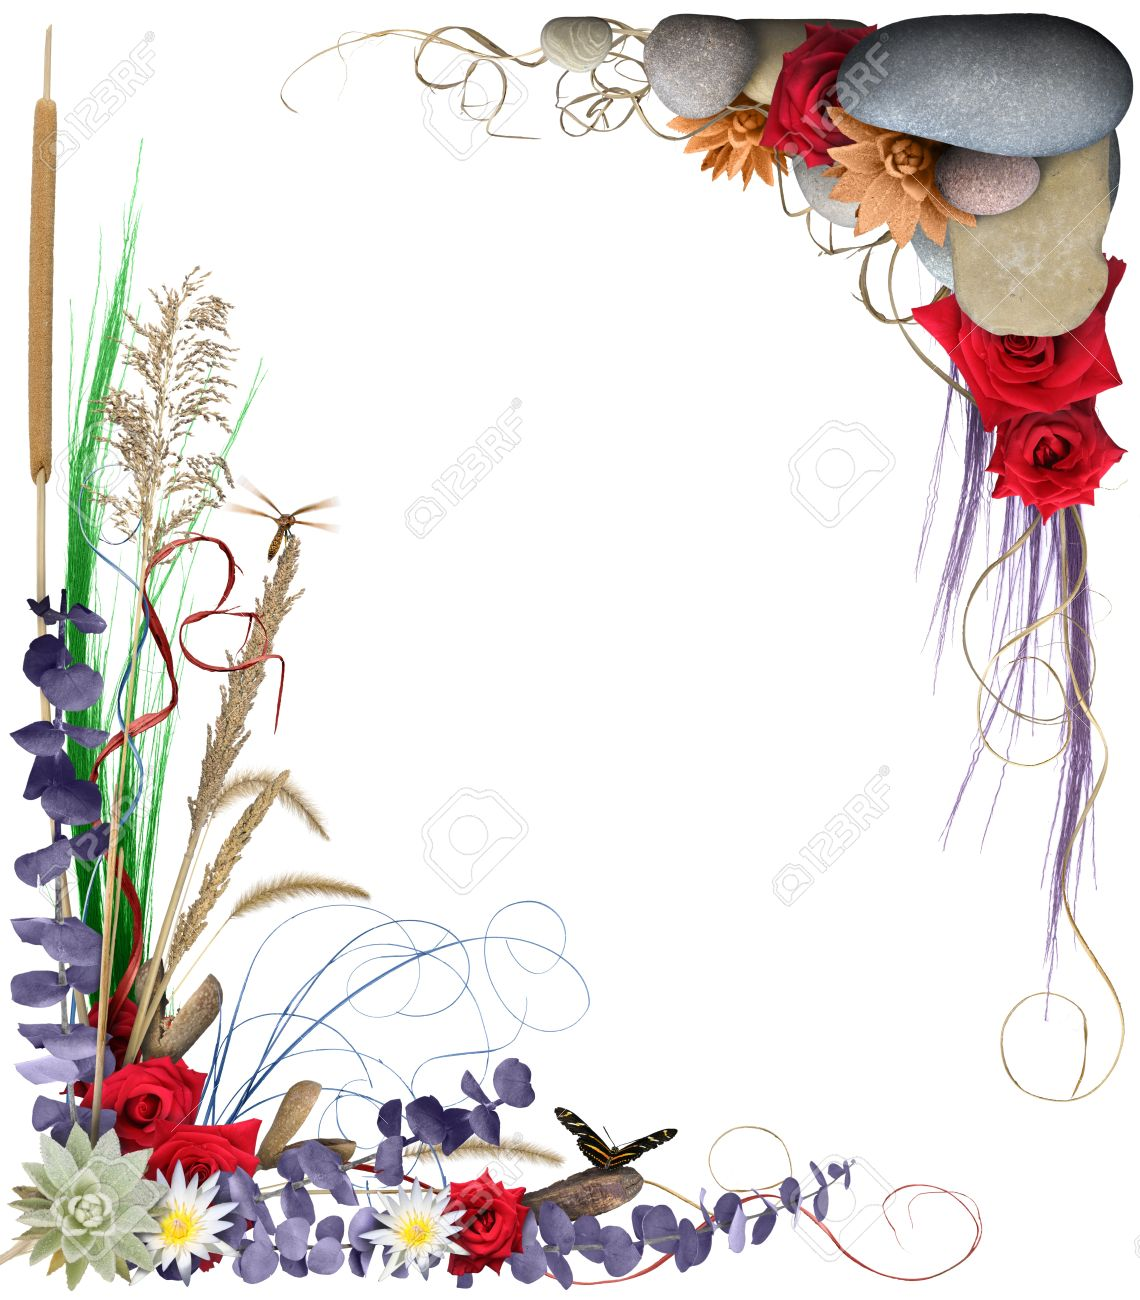 A Colorful Floral Arrangement Forming A Border Frame Isolated ...